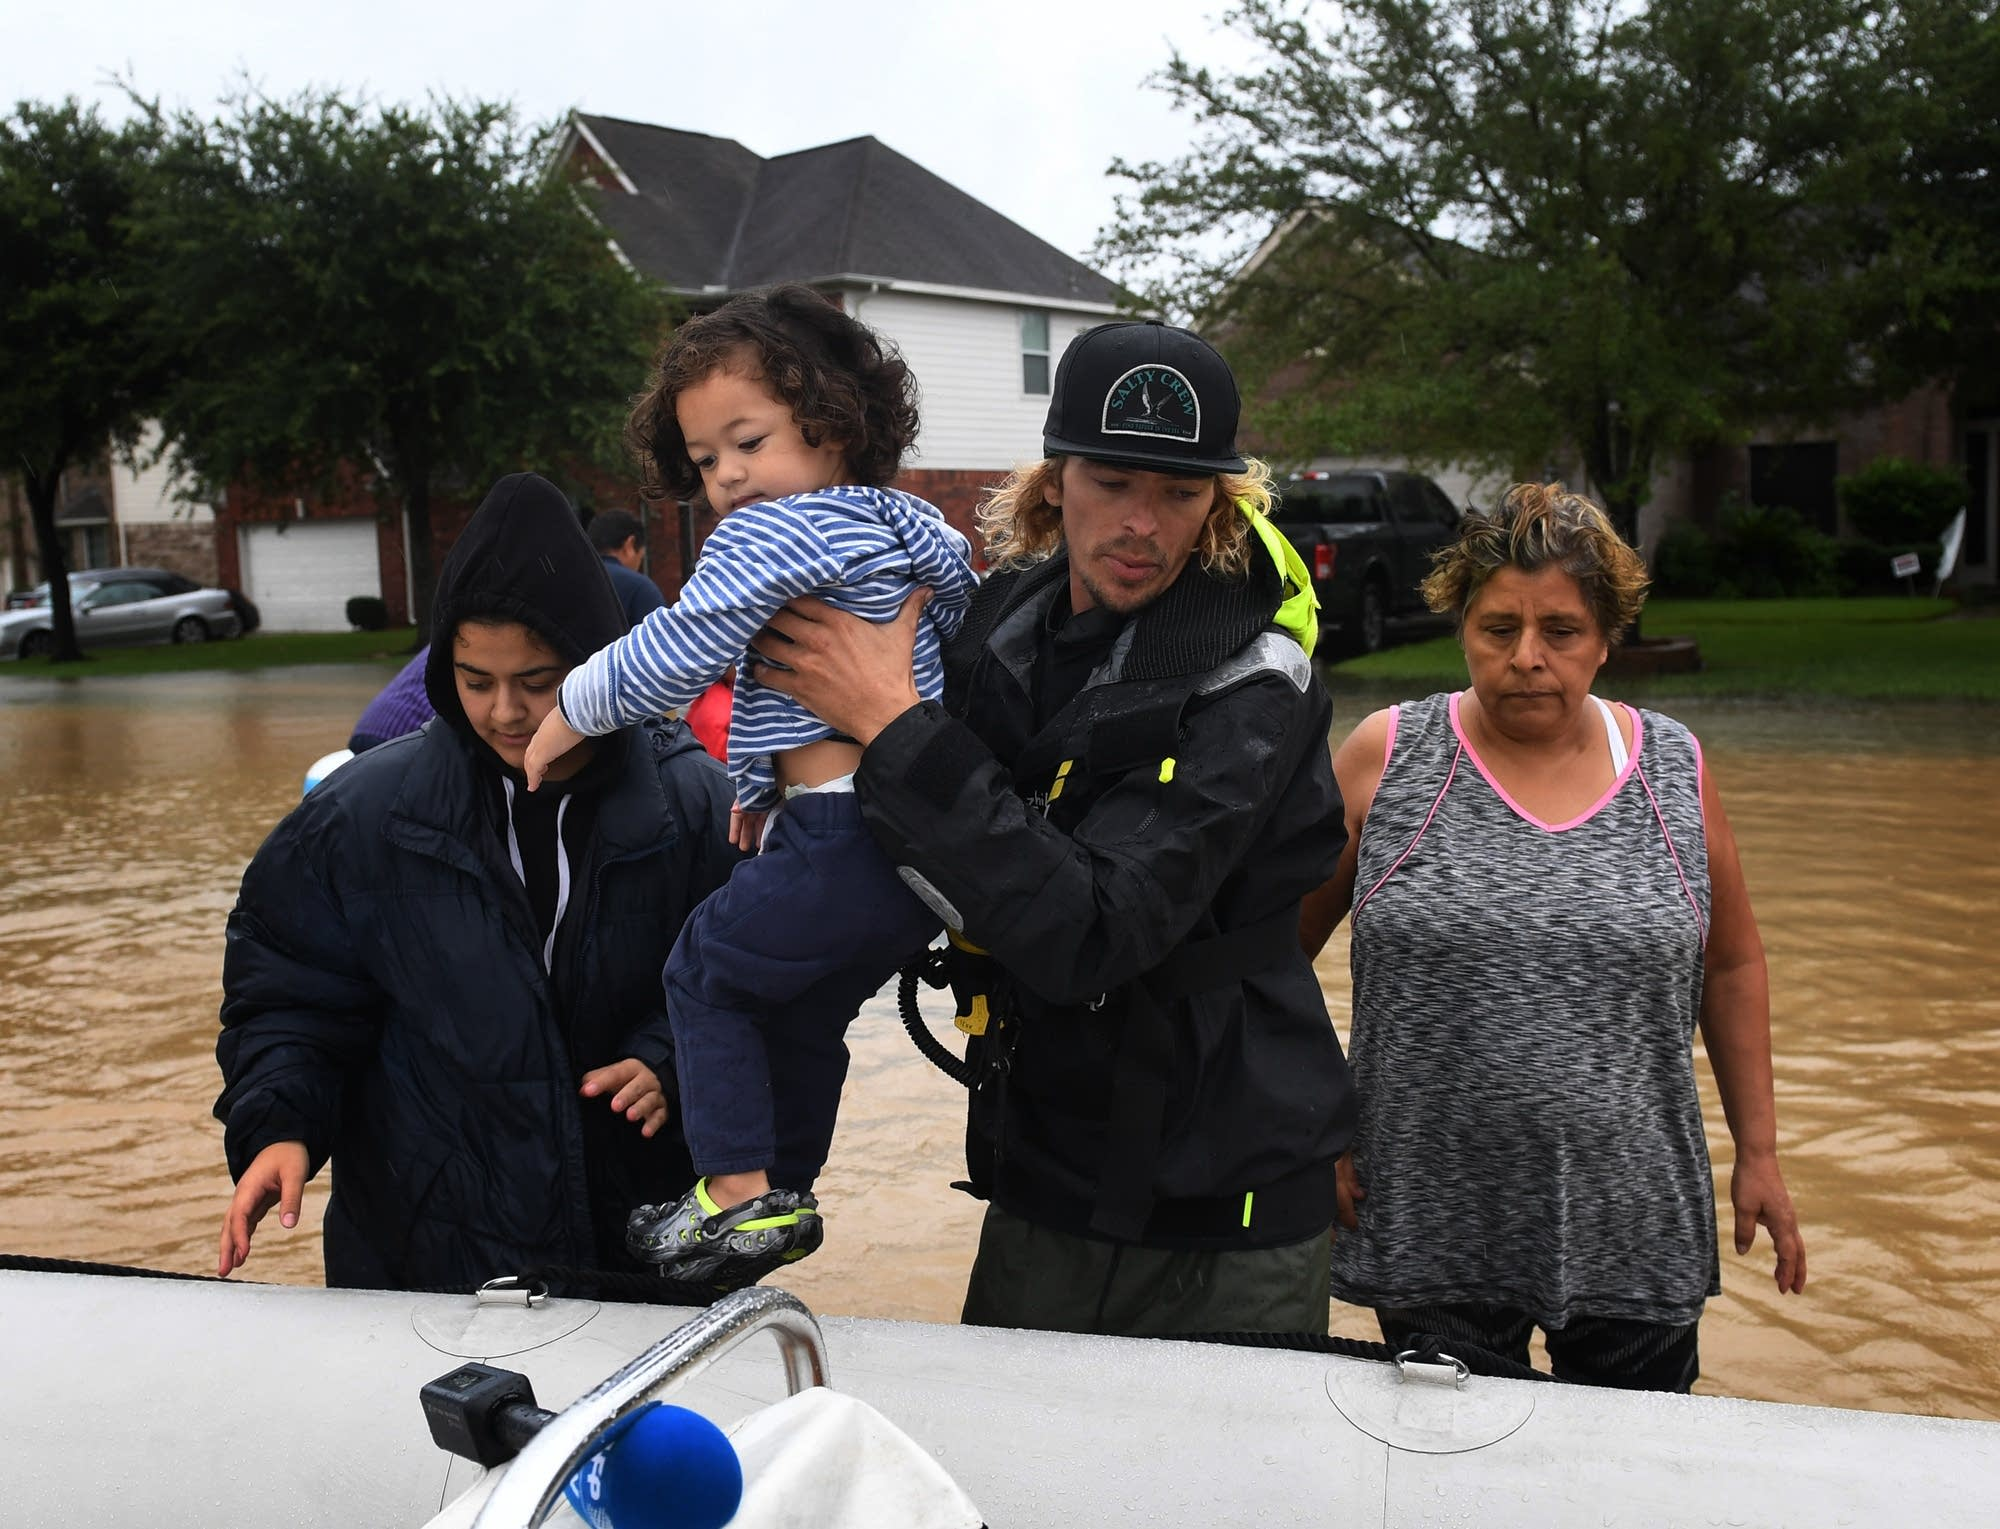 Andrew Brennan helps evacuate an elderly woman and her granddaughter.